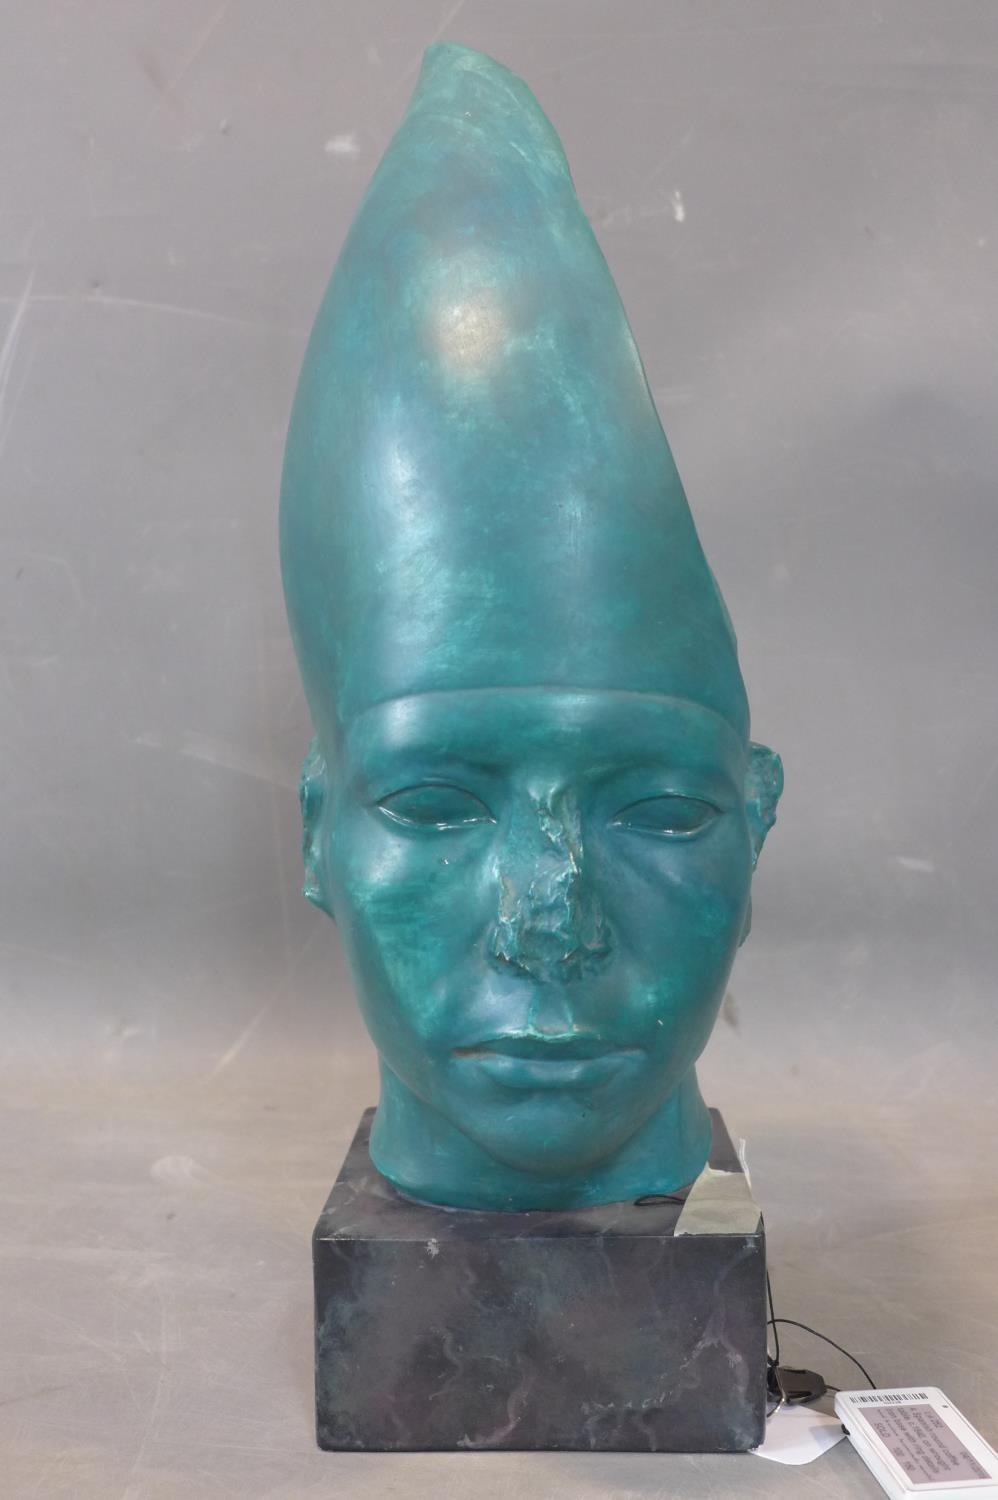 Lot 91 - A turquoise cast plaster Egyptian style head, indistinctly signed to reverse, on faux marble cast